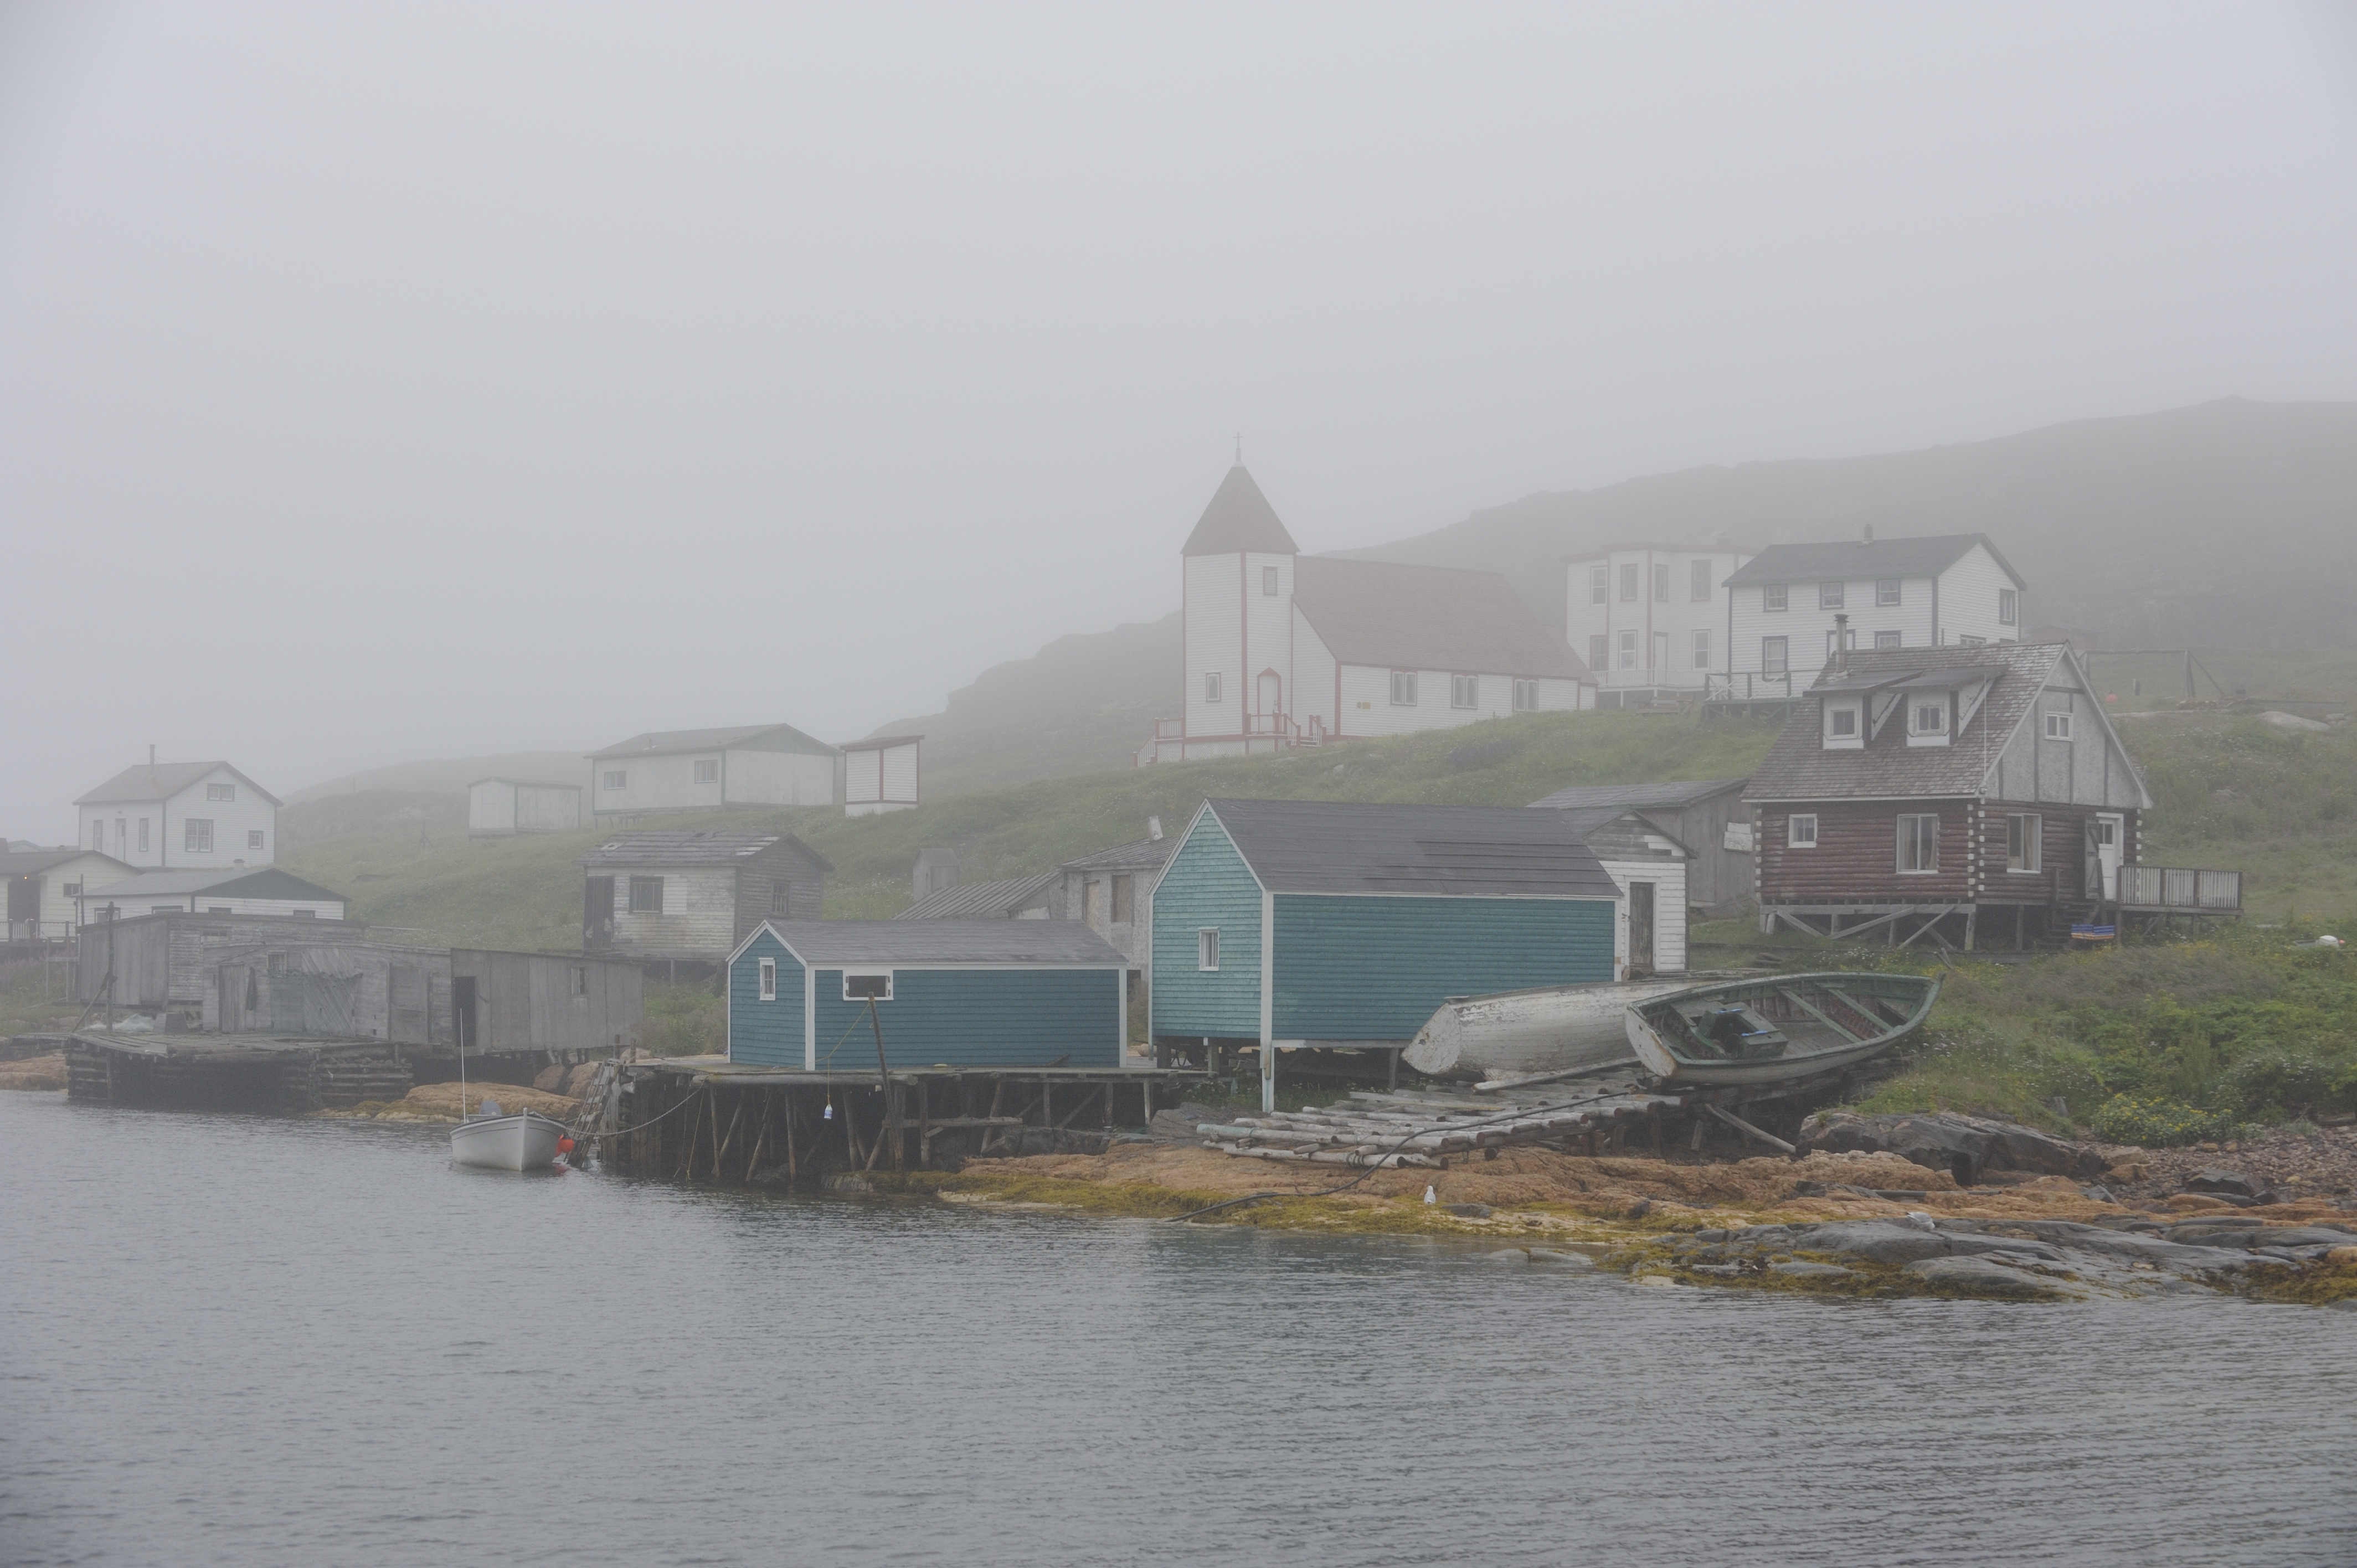 Their Excellencies and Marie-Éden visited Battle Harbour. Situated on a small, nearshore island, Battle Harbour was for two centuries the economic and social centre of the southeastern coast of Labrador.